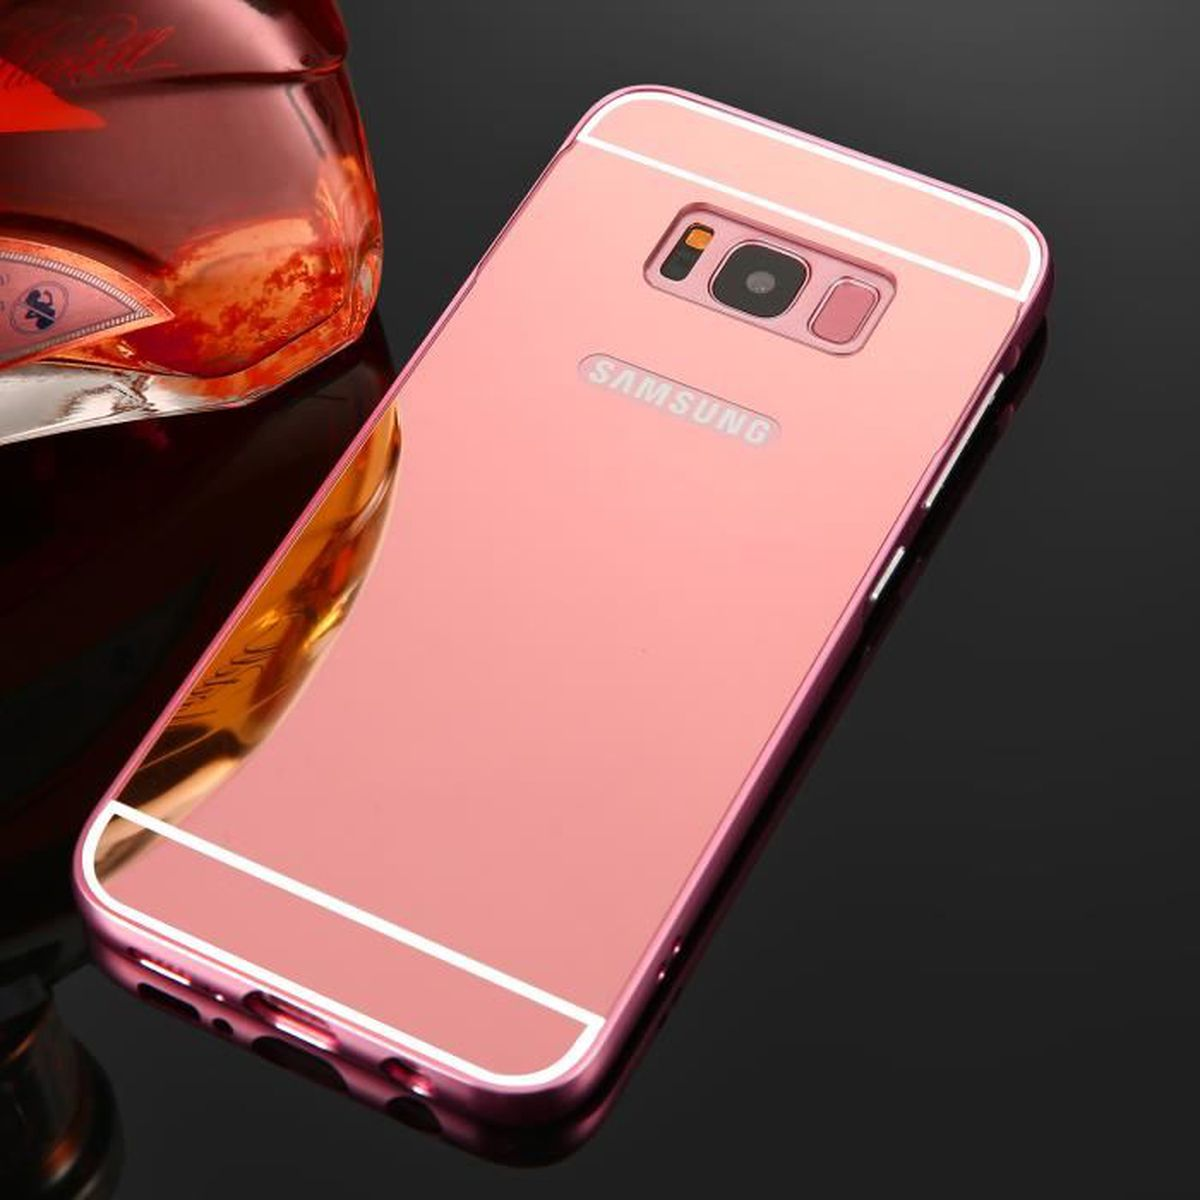 samsung galaxy s8 plus miroir coque rose or antichoc coque samsung galaxy s8 plus etui m tal. Black Bedroom Furniture Sets. Home Design Ideas